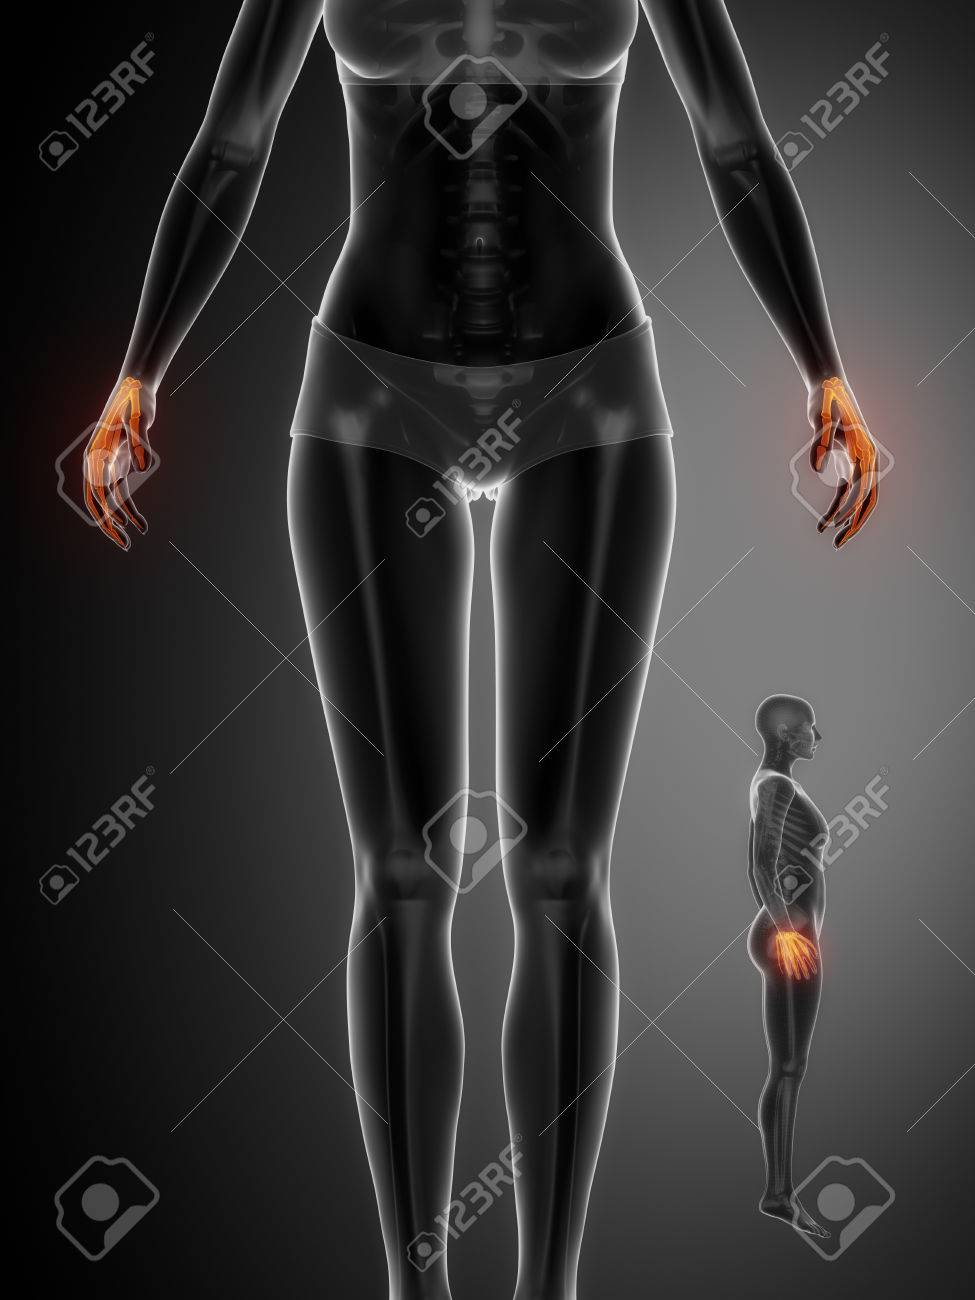 Wrist Bone Anatomy X Ray Scan Stock Photo Picture And Royalty Free